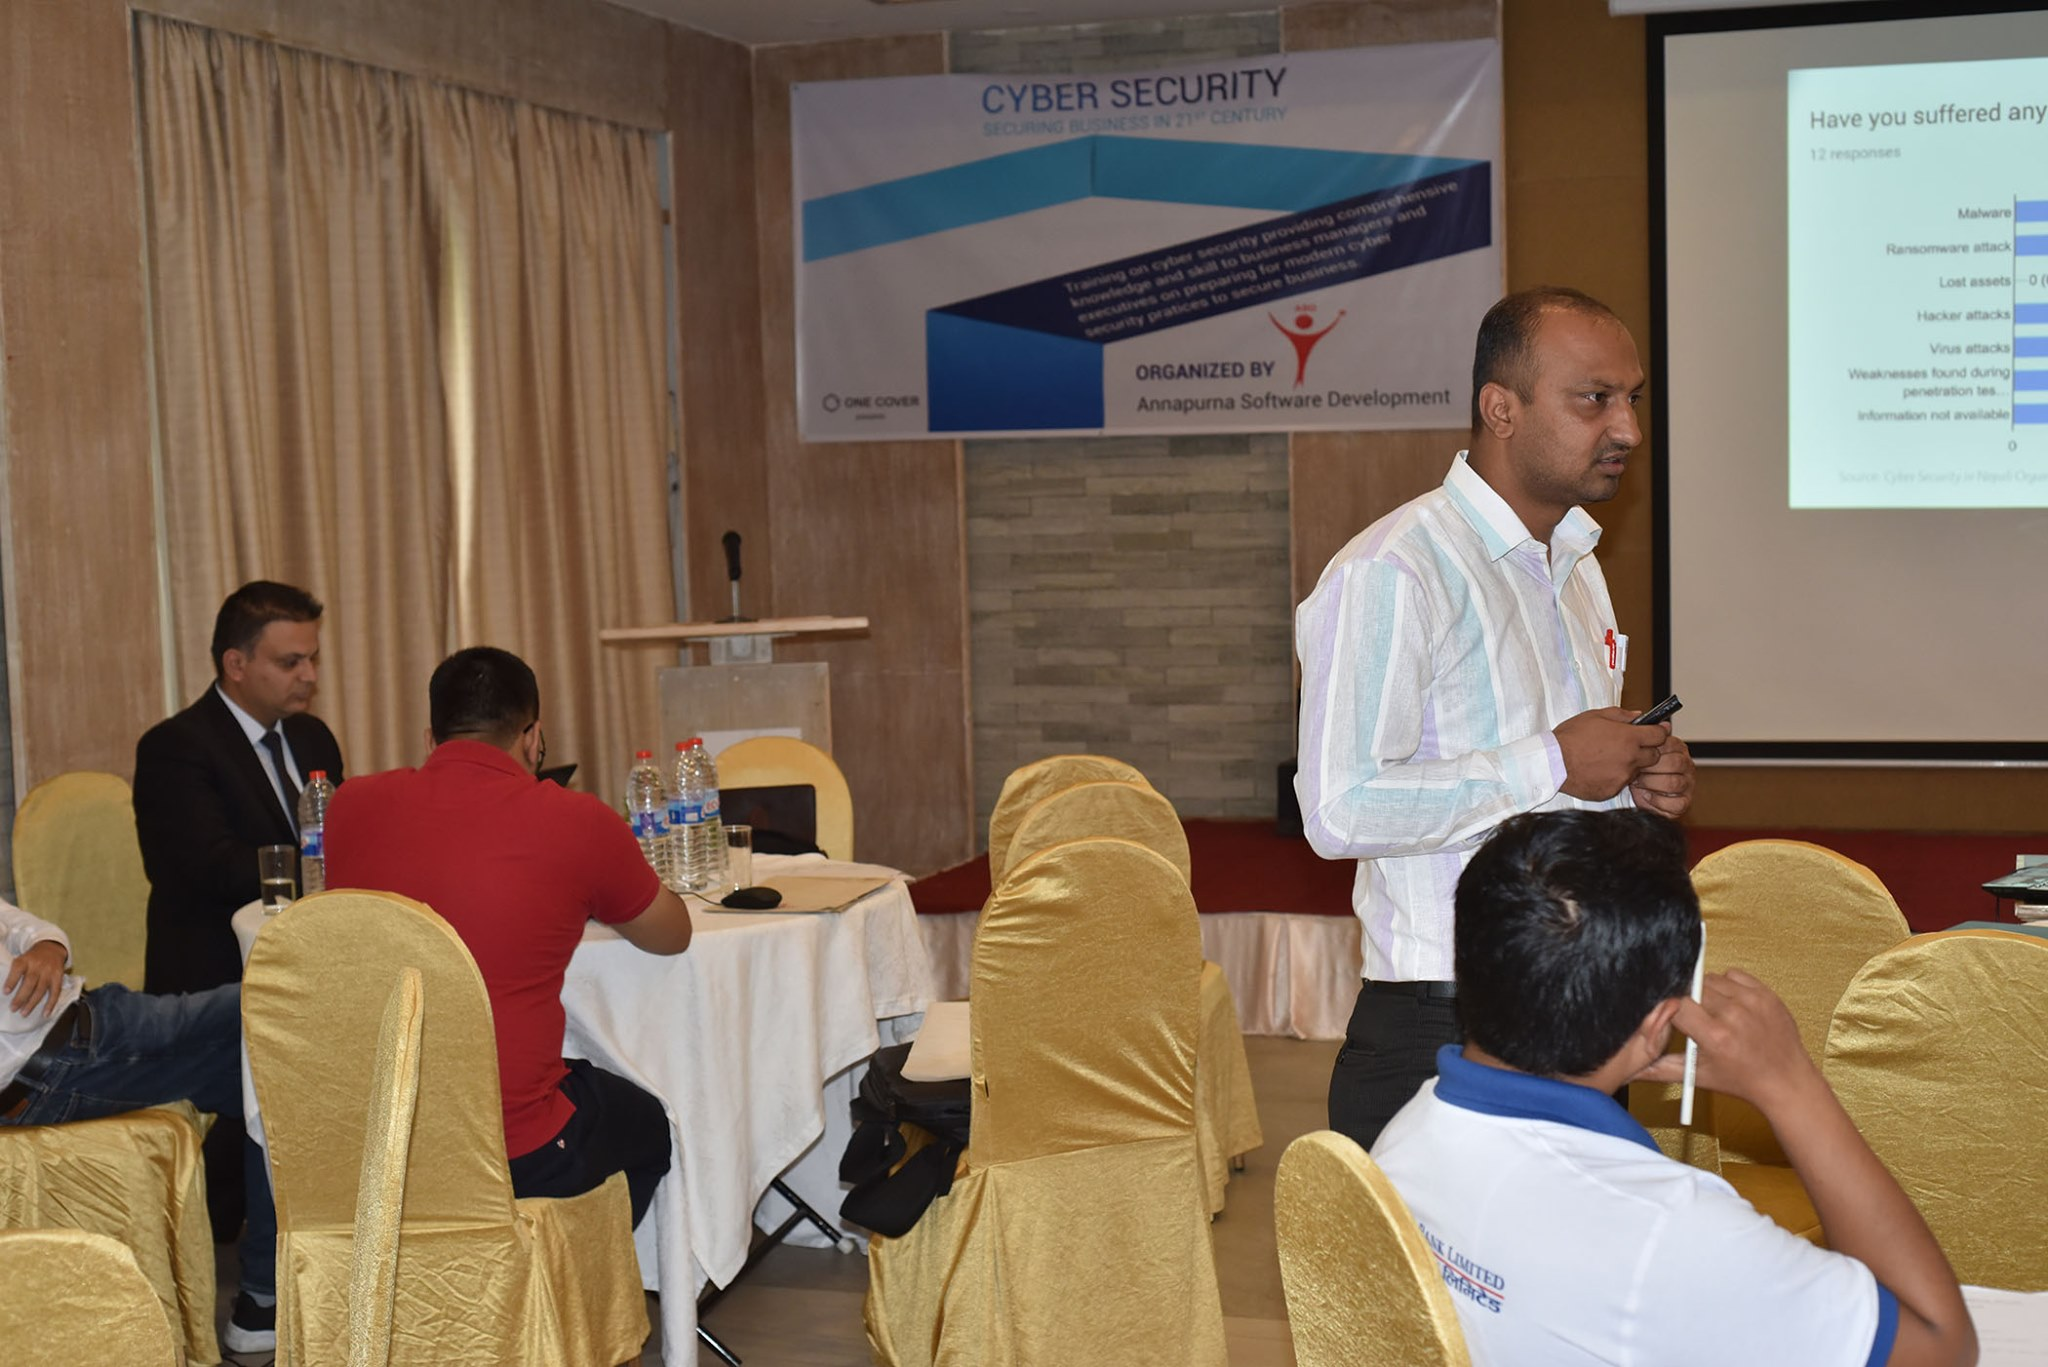 cyber security trainer from nepal